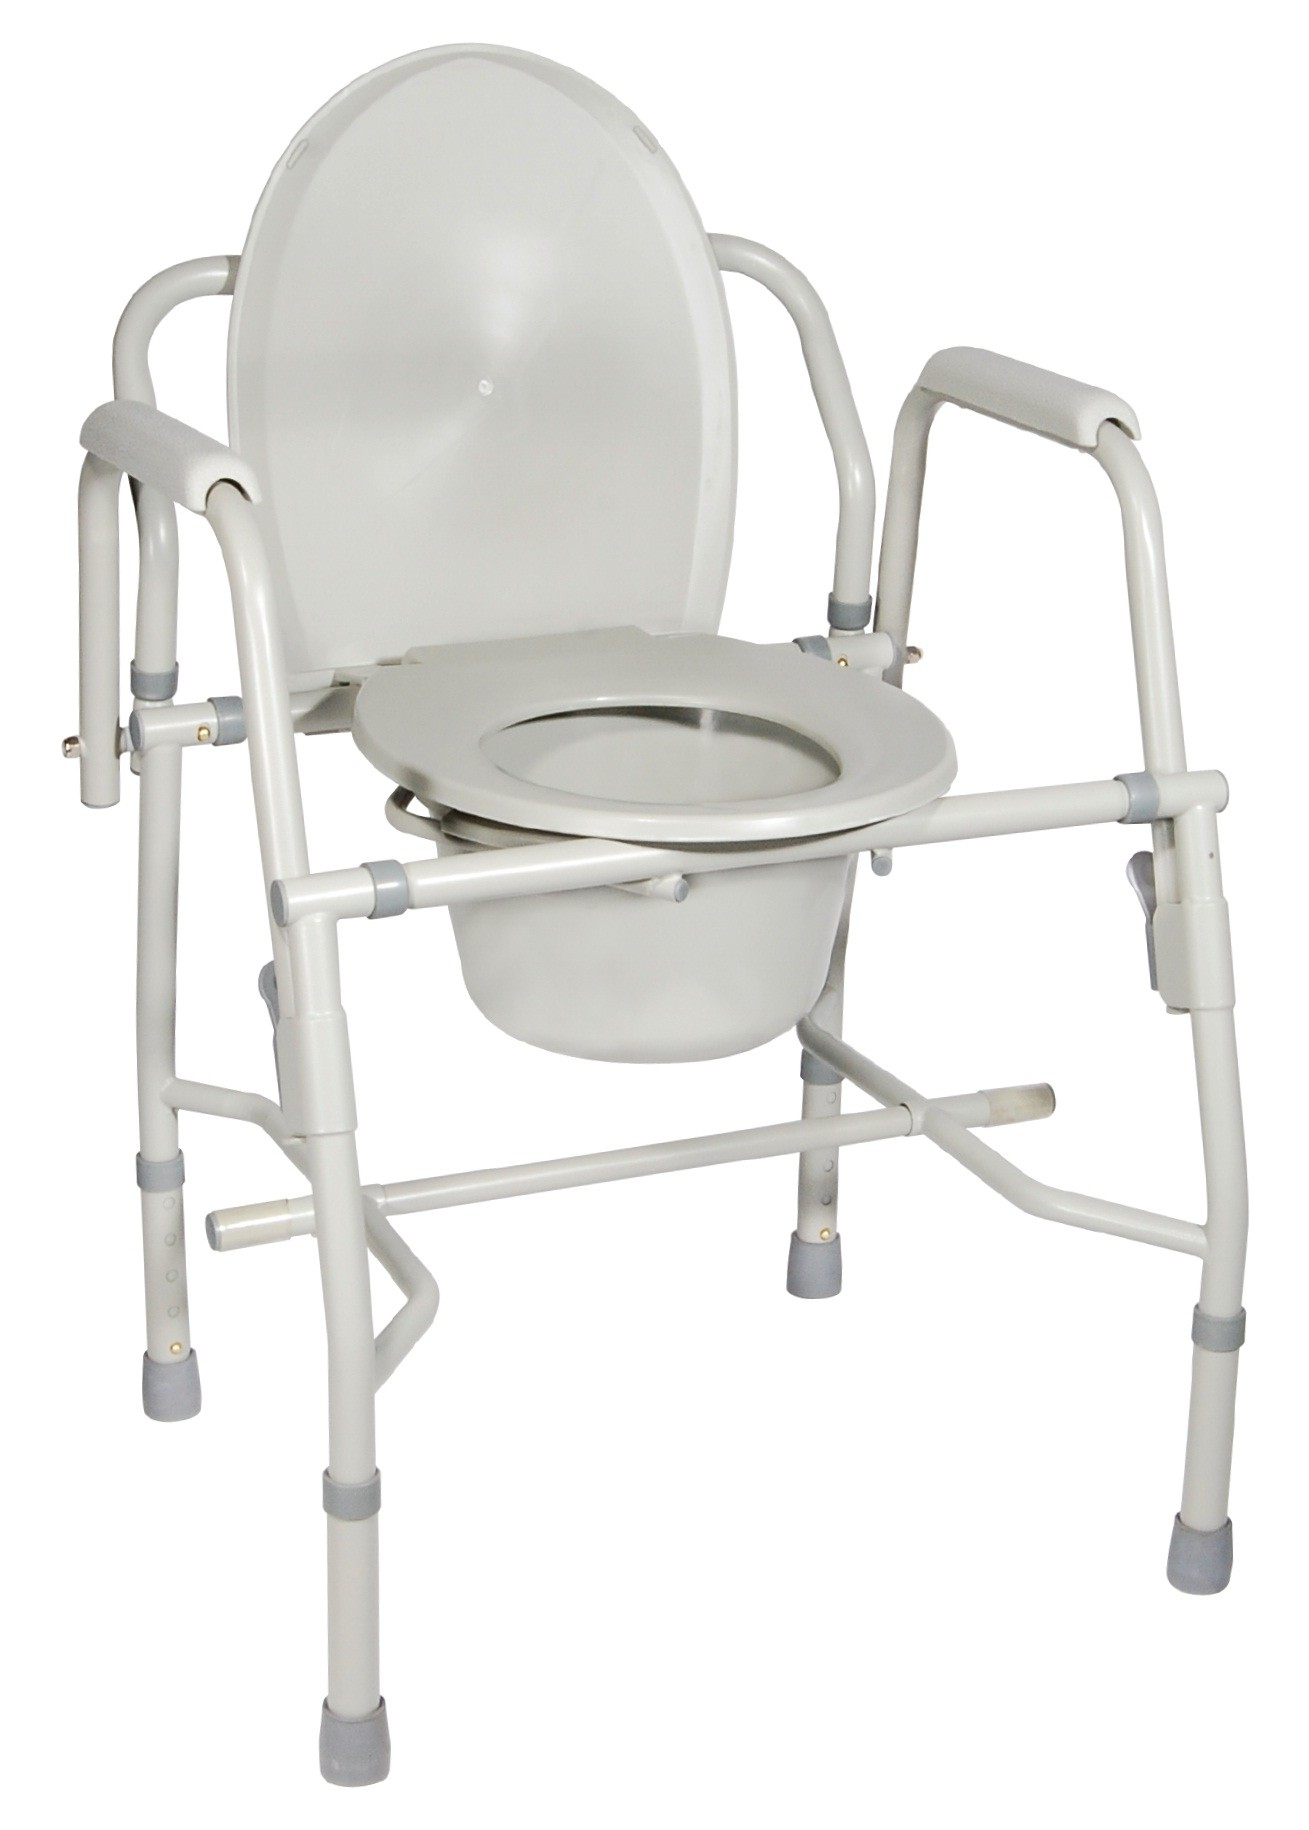 Commodes at Lowes | Lowes Bathroom Faucets | Bathroom Cabinets Lowes